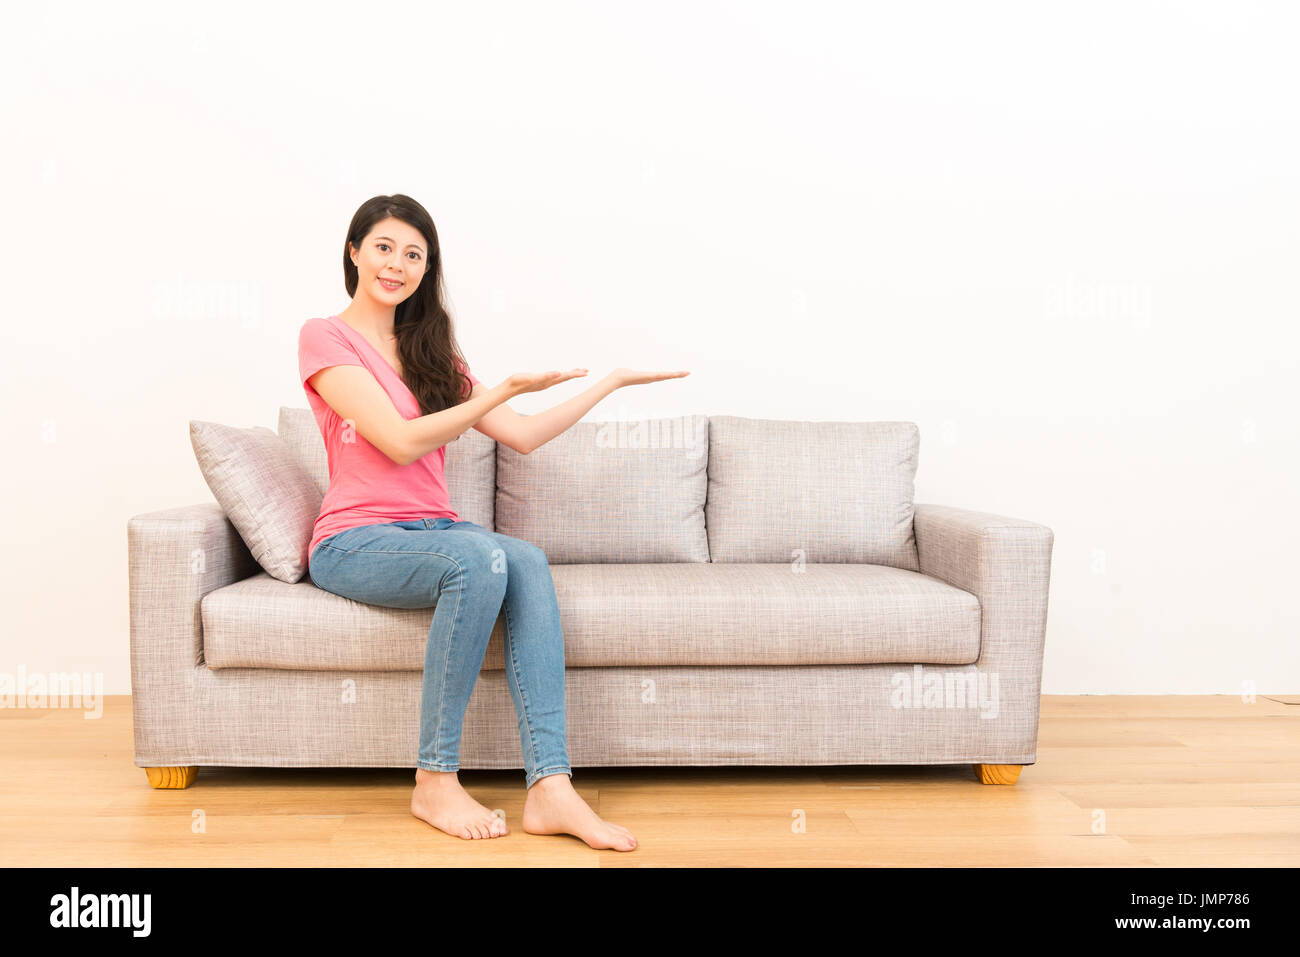 Tremendous Smiling Asian Woman Sitting On The Couch Sofa Showing Gmtry Best Dining Table And Chair Ideas Images Gmtryco